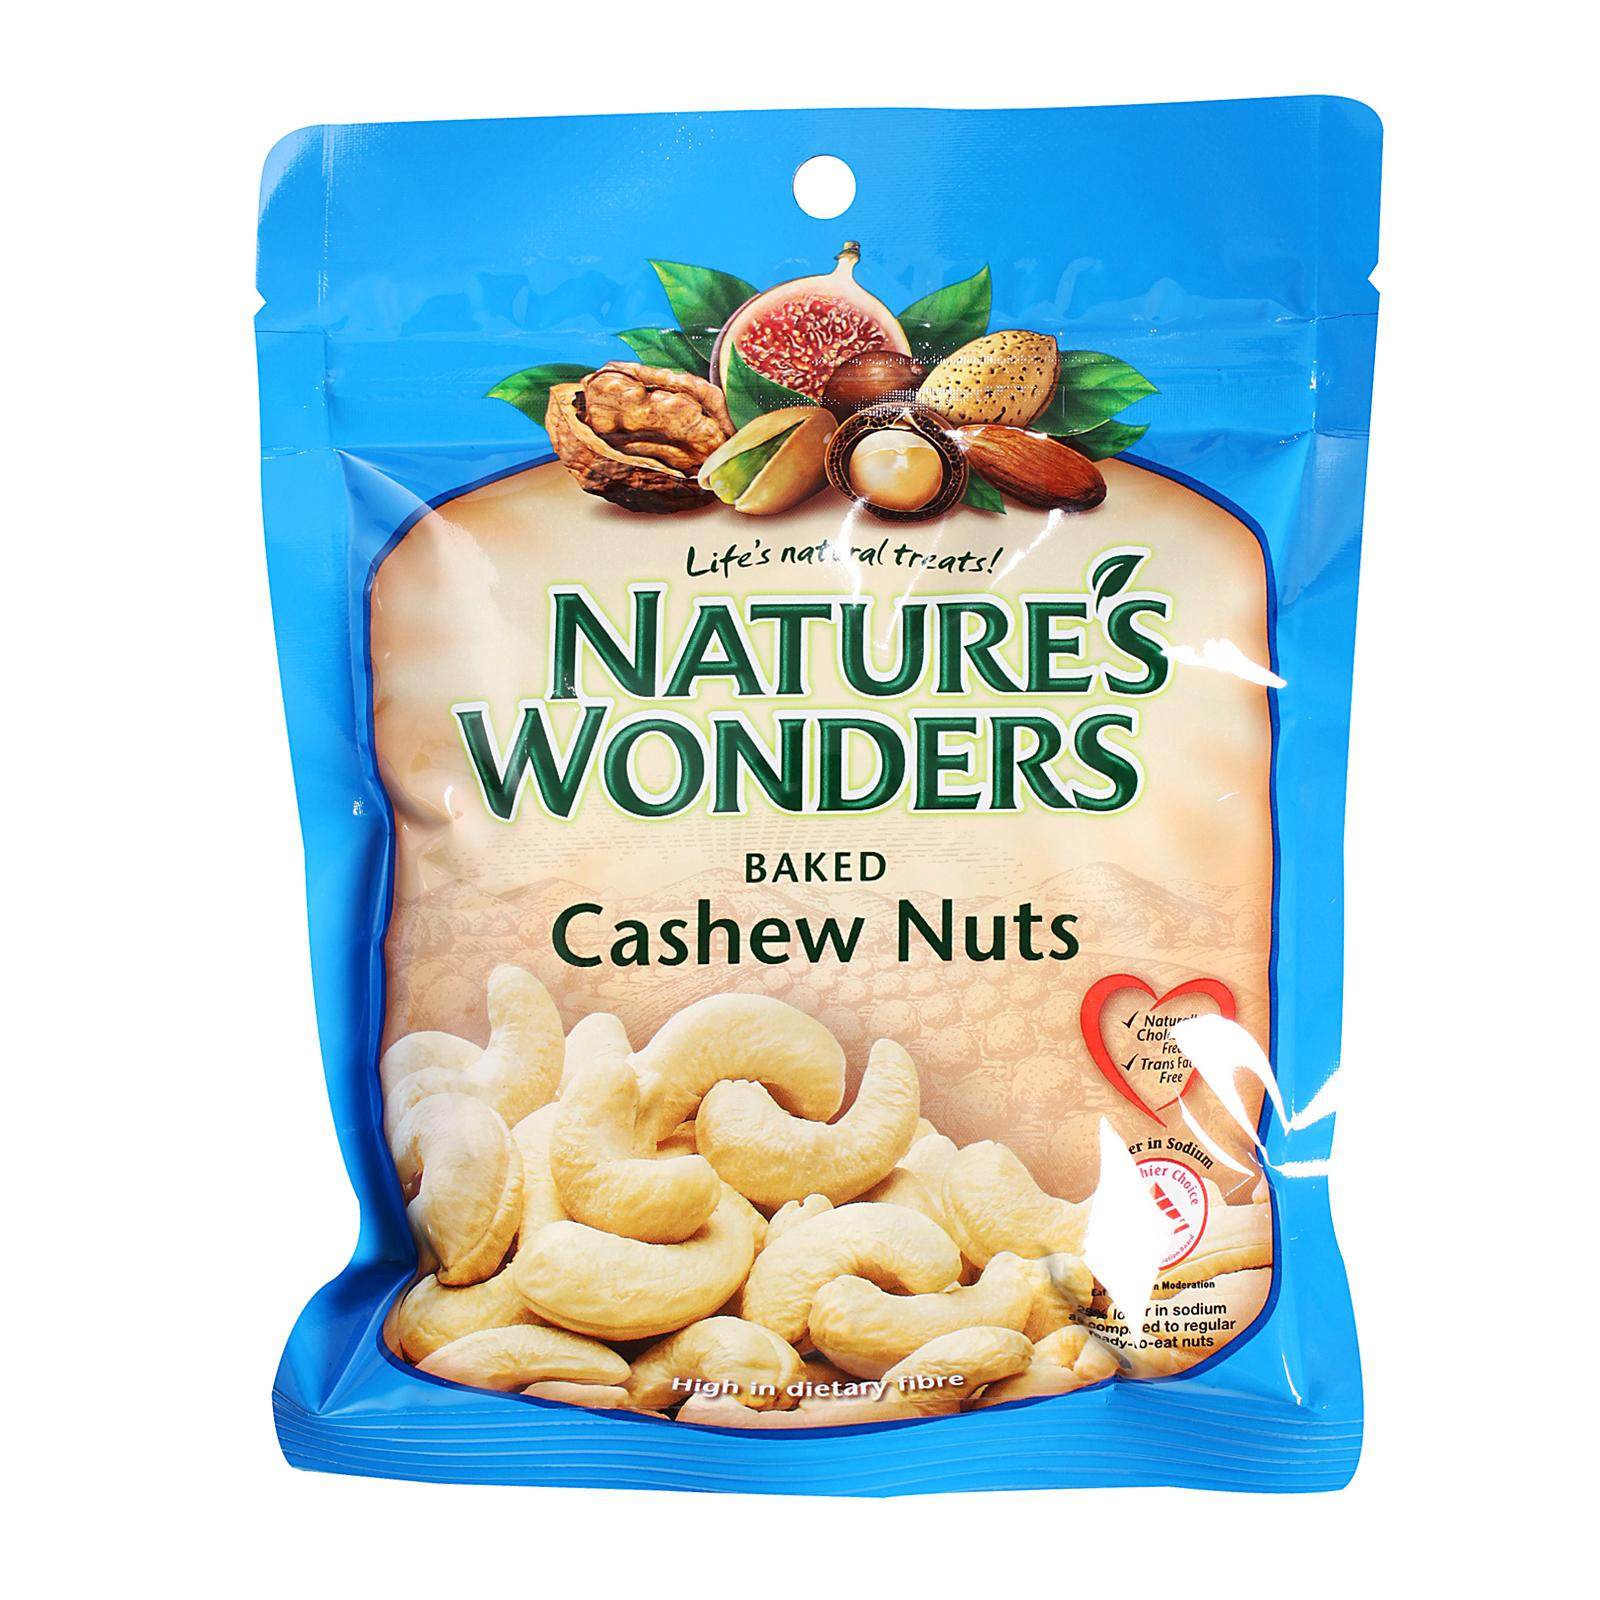 Nature's Wonders Baked Cashew Nuts